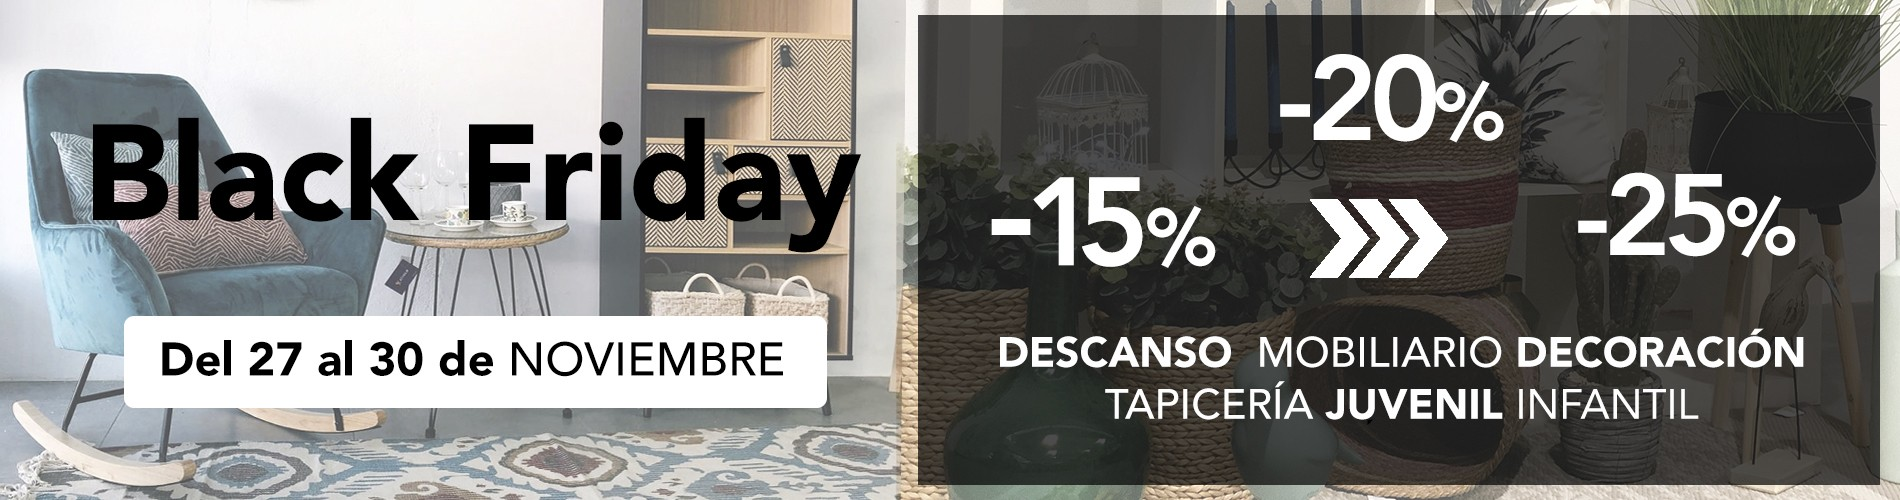 Ofertas irresistibles de Black Friday